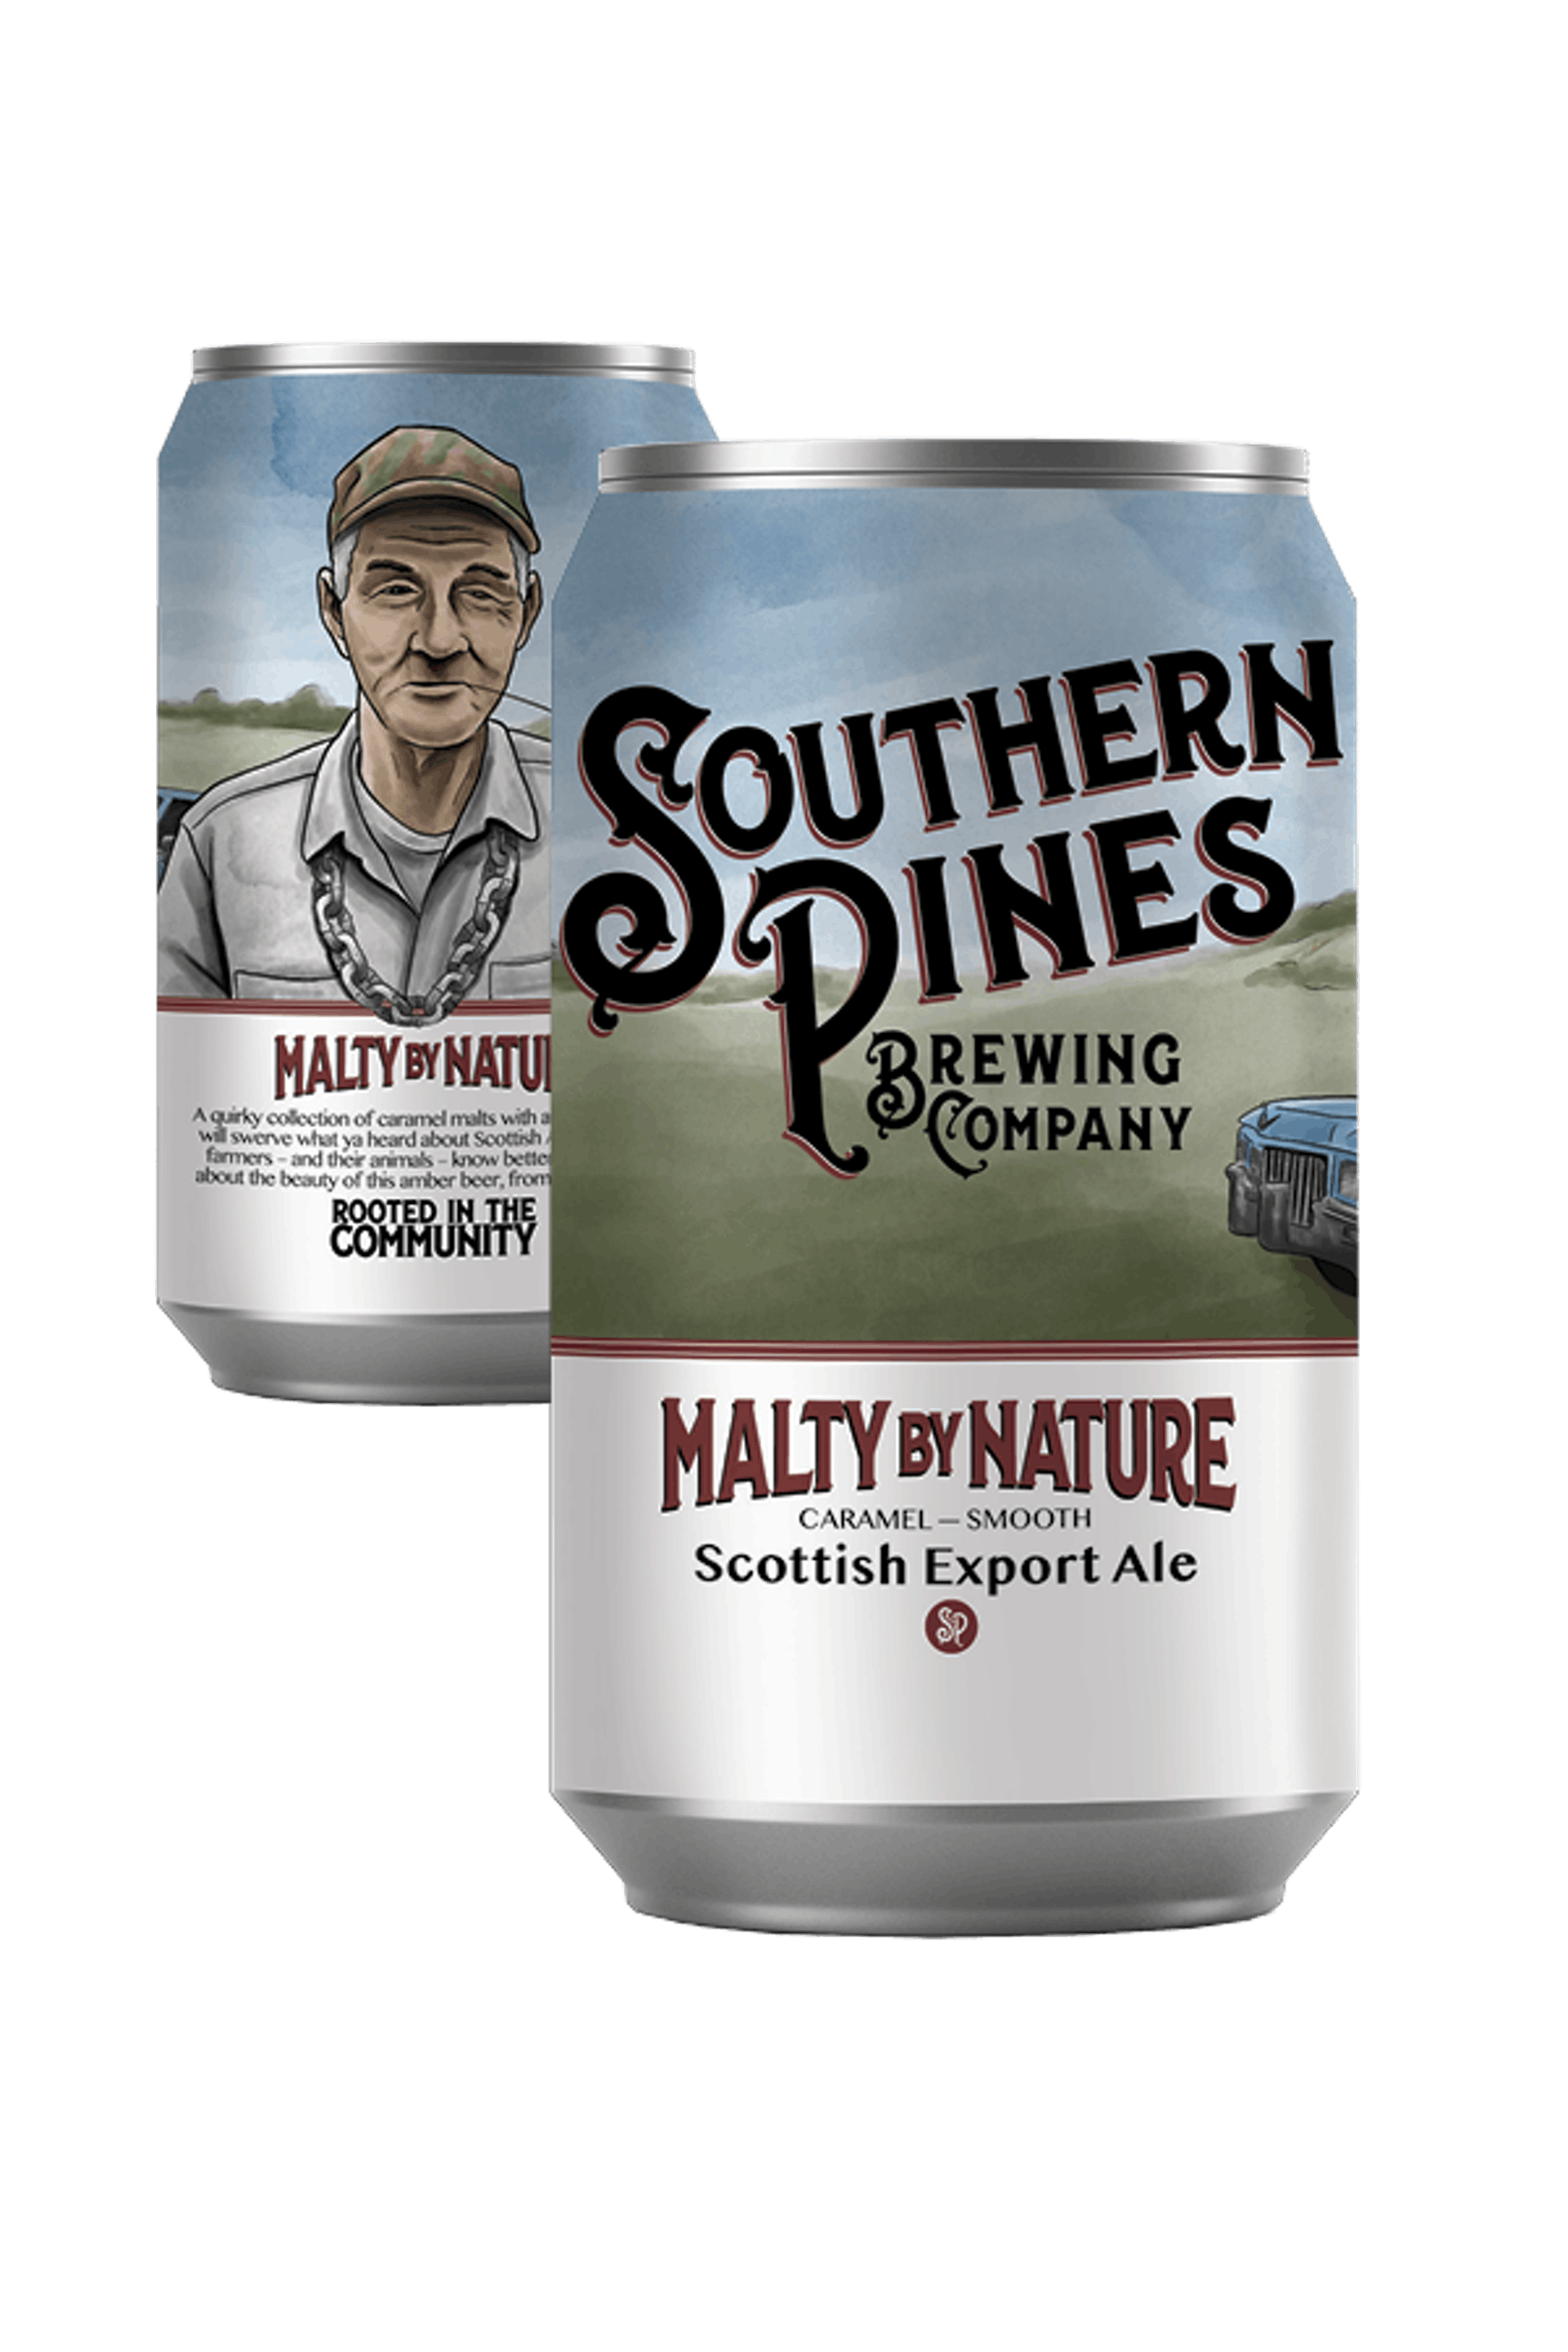 Malty by Nature